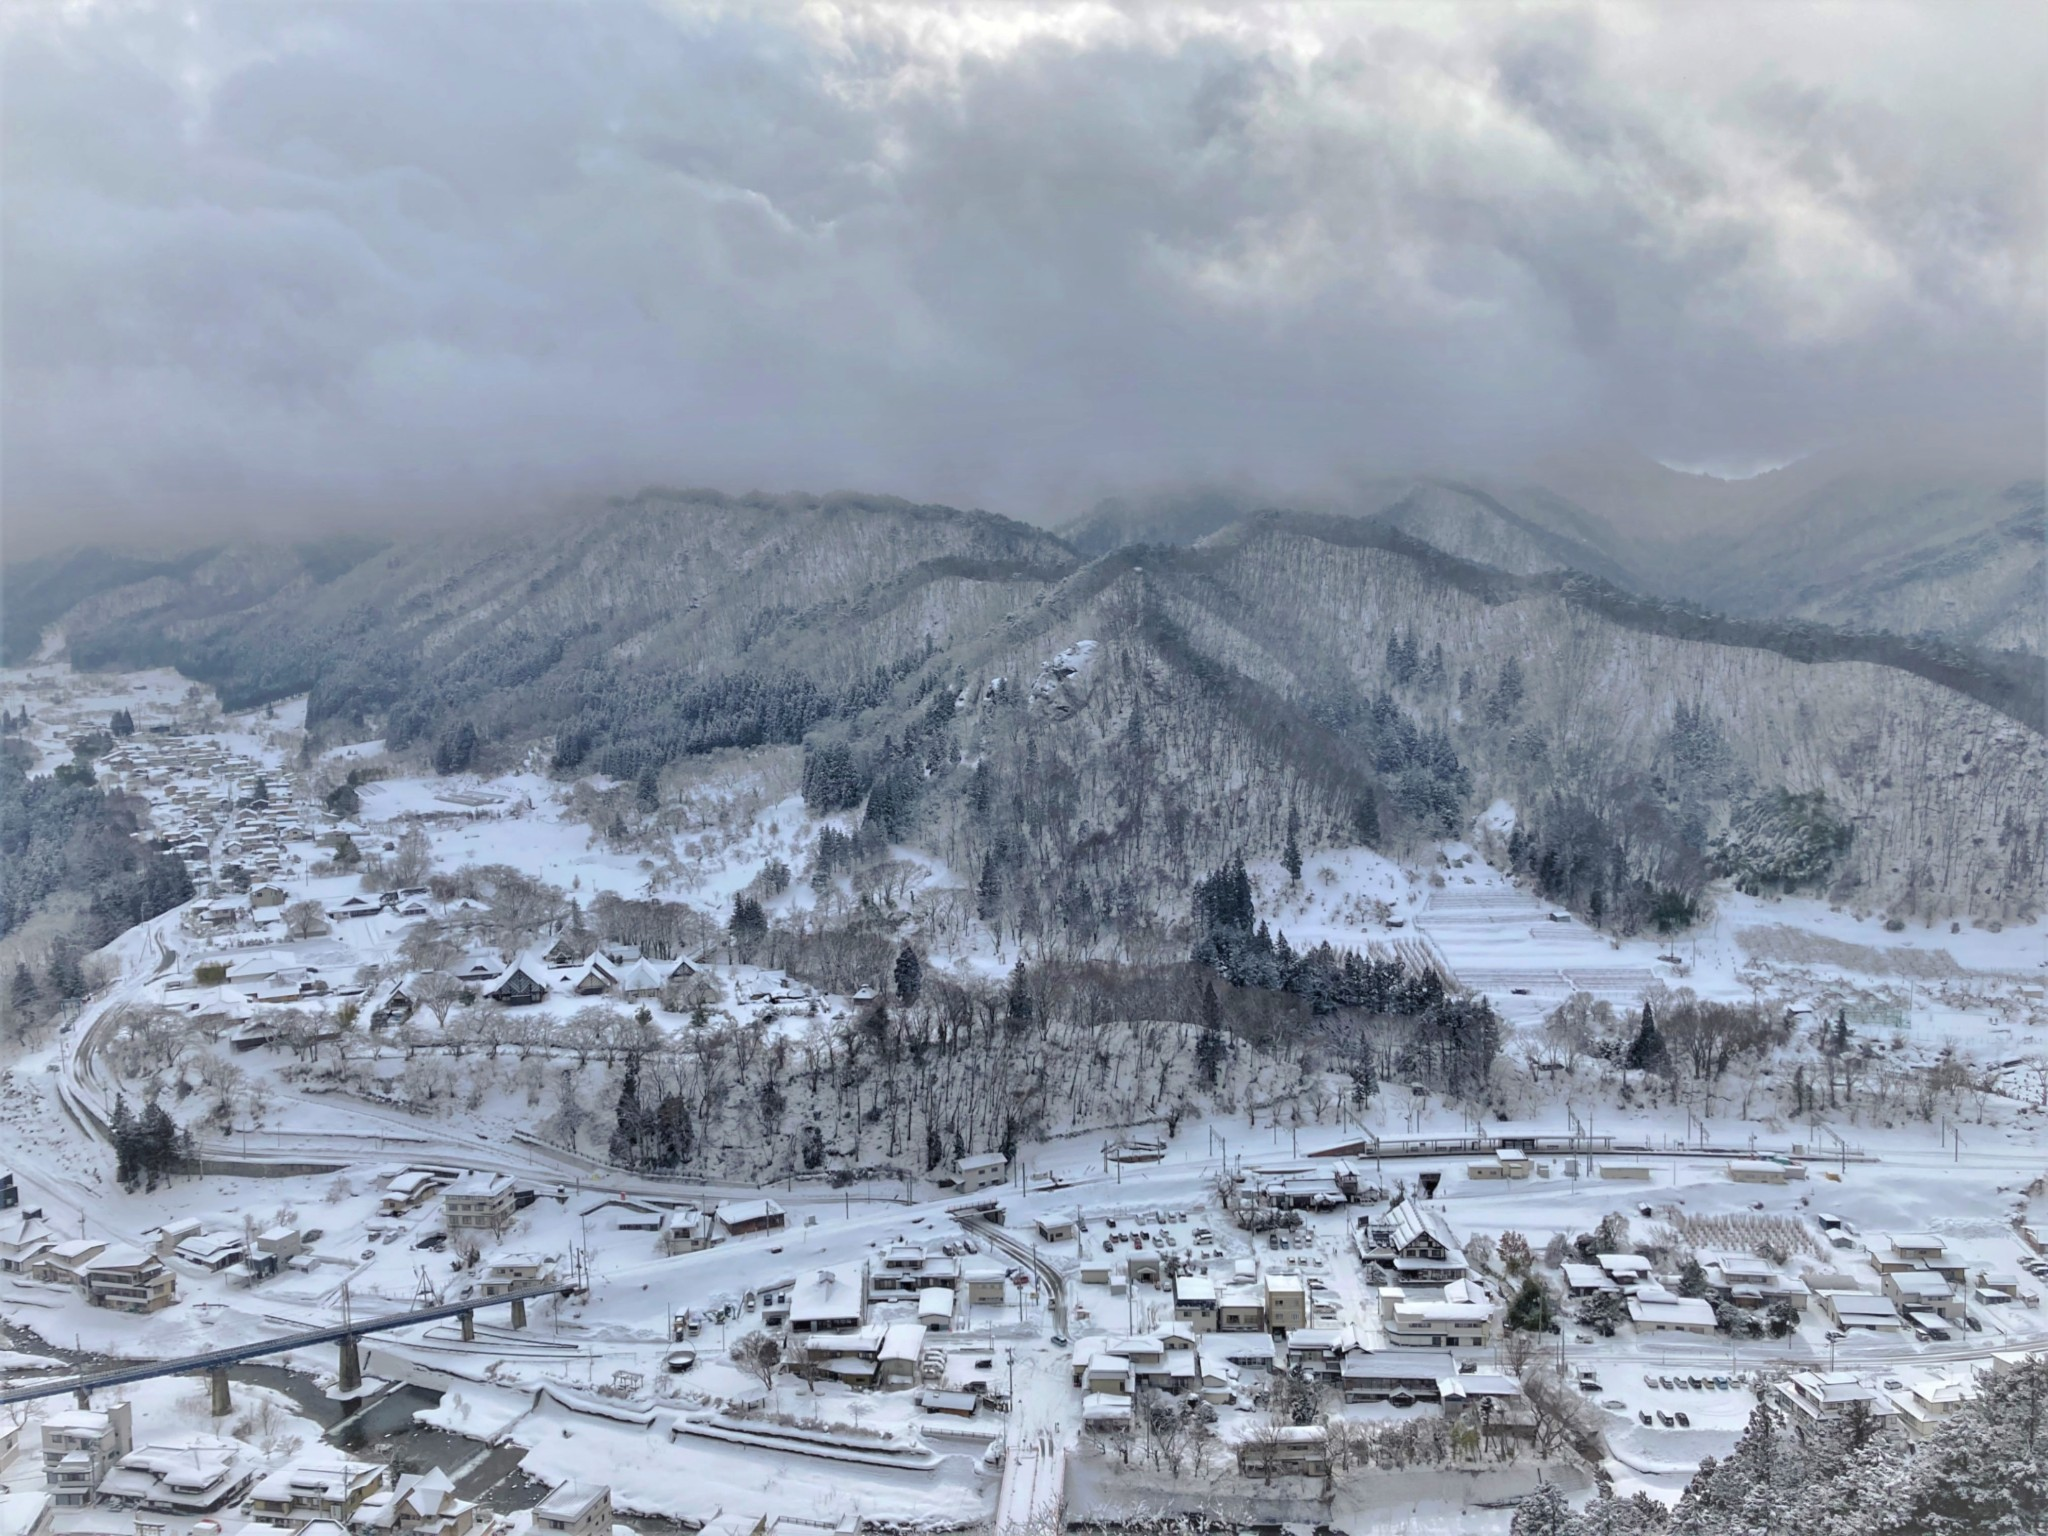 A winter view of the Japanese town of Yamadera covered in snow, situated in front of barren mountains on a cloudy day.